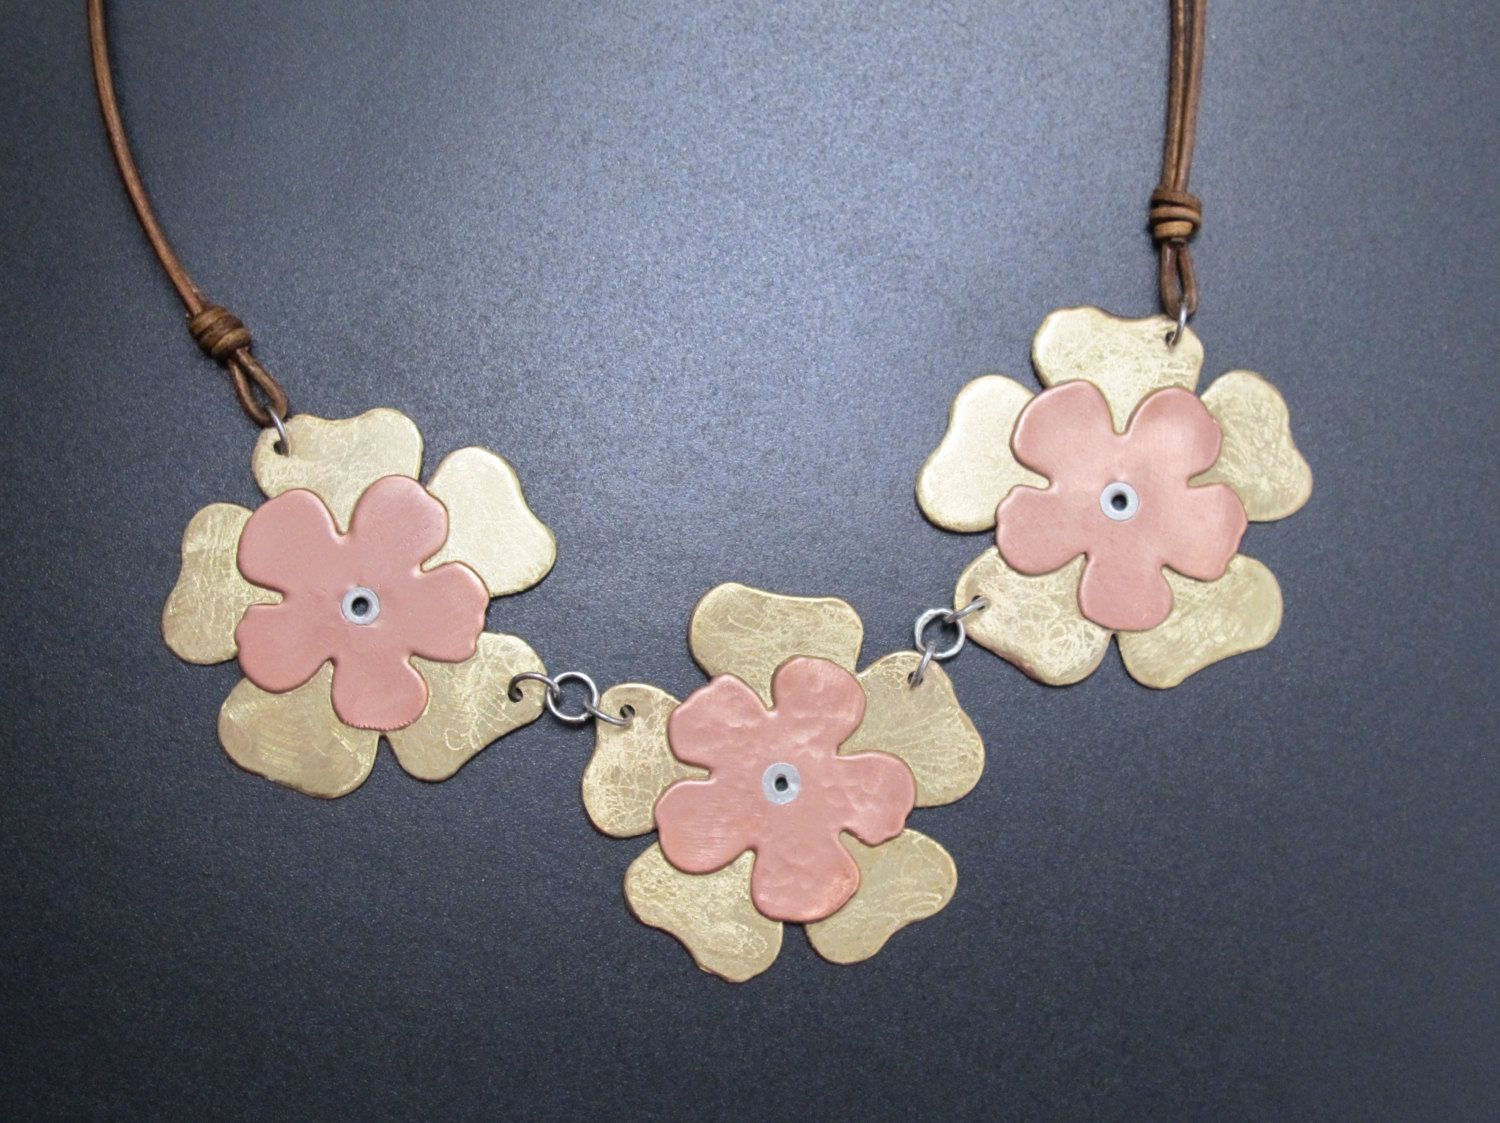 flower necklaces metal kacy flowers buy online golden product kacyworld necklace at com